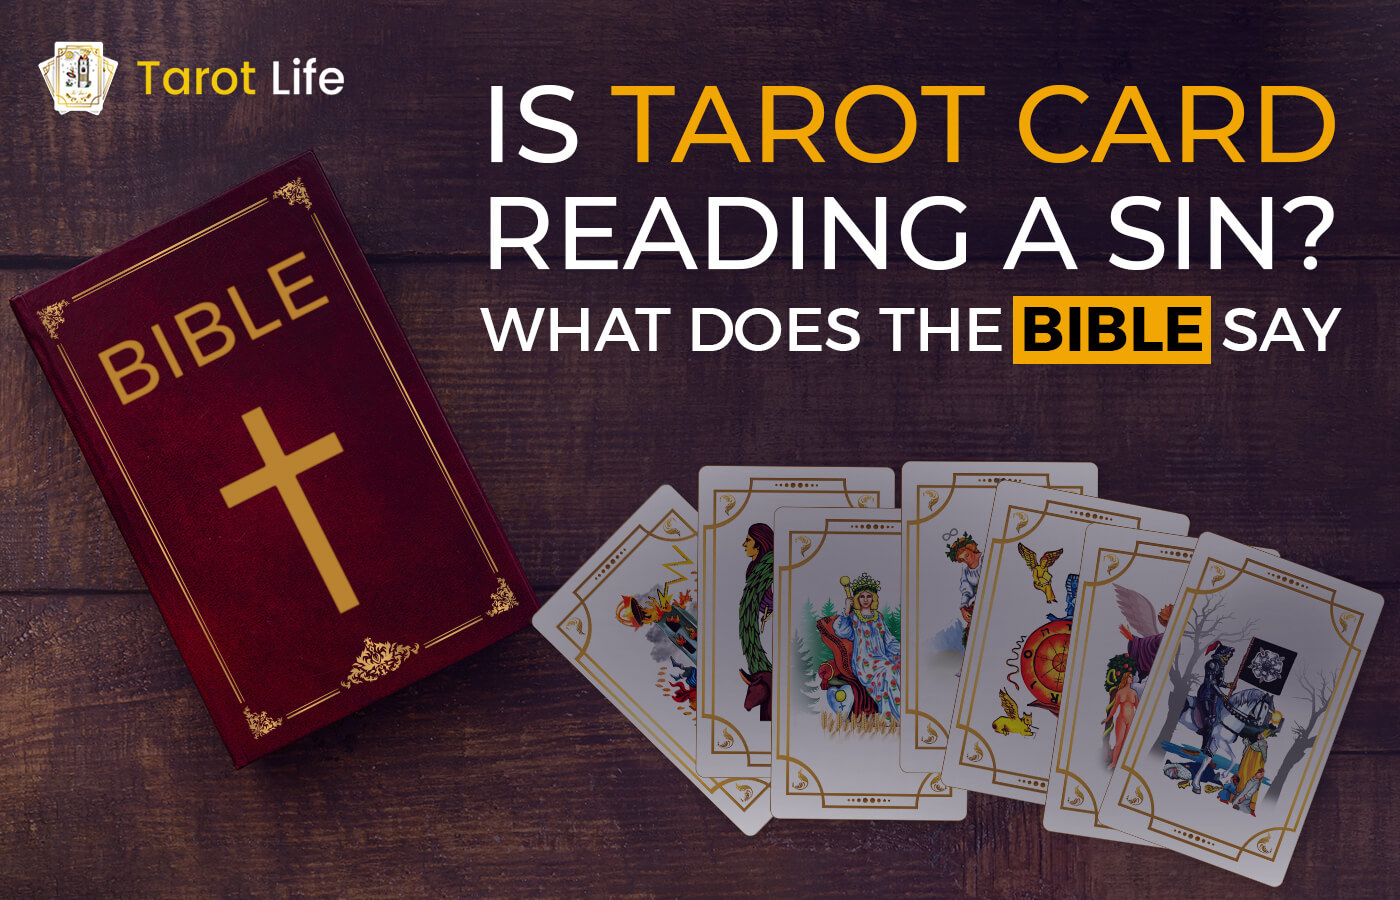 Is Tarot Card Reading A Sin? What does the Bible say